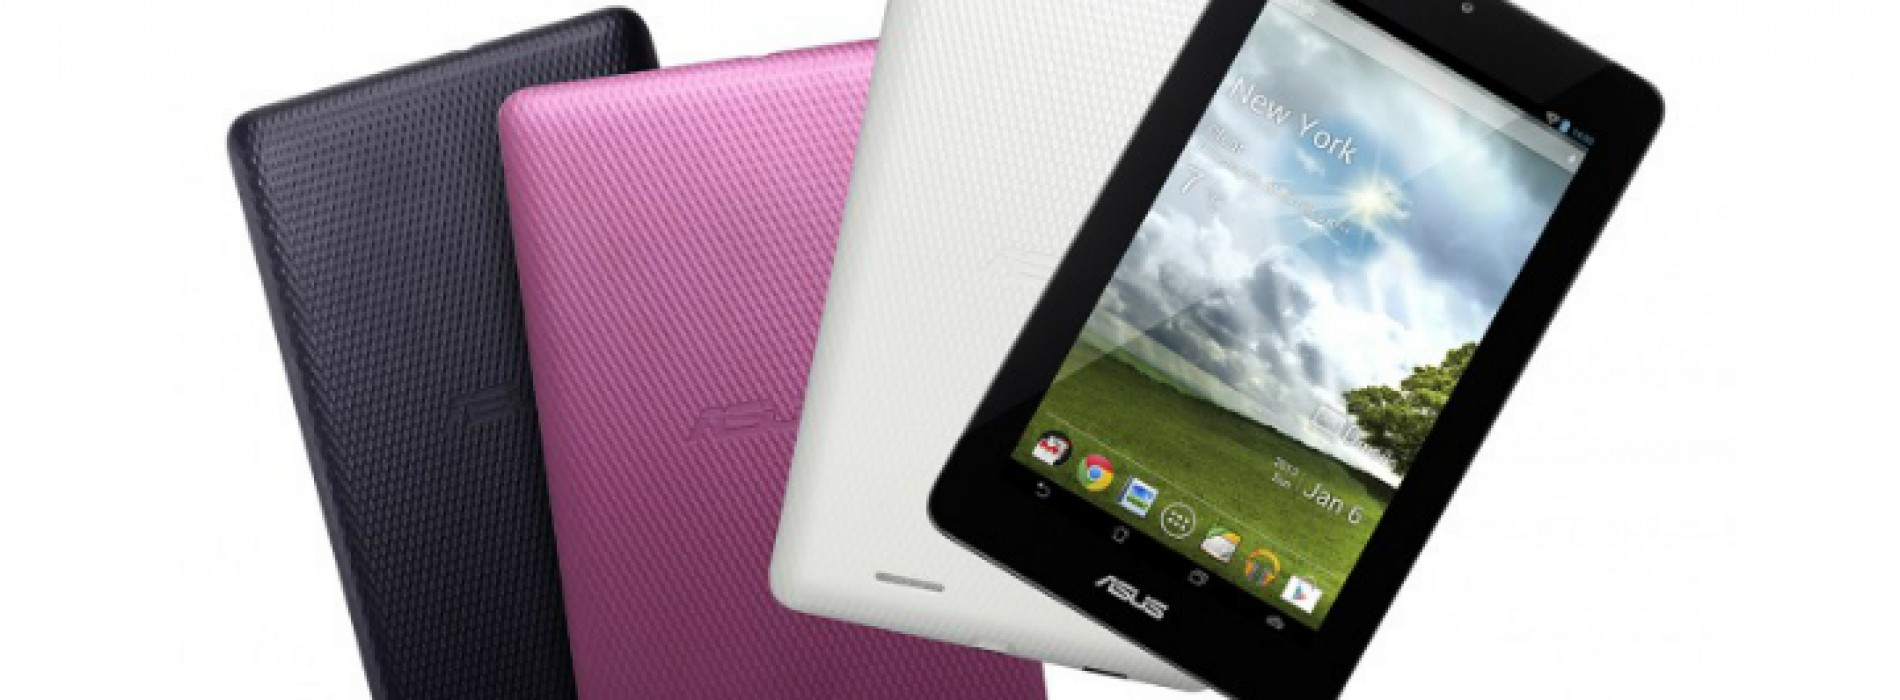 ASUS MeMO Pad lands in USA for $149